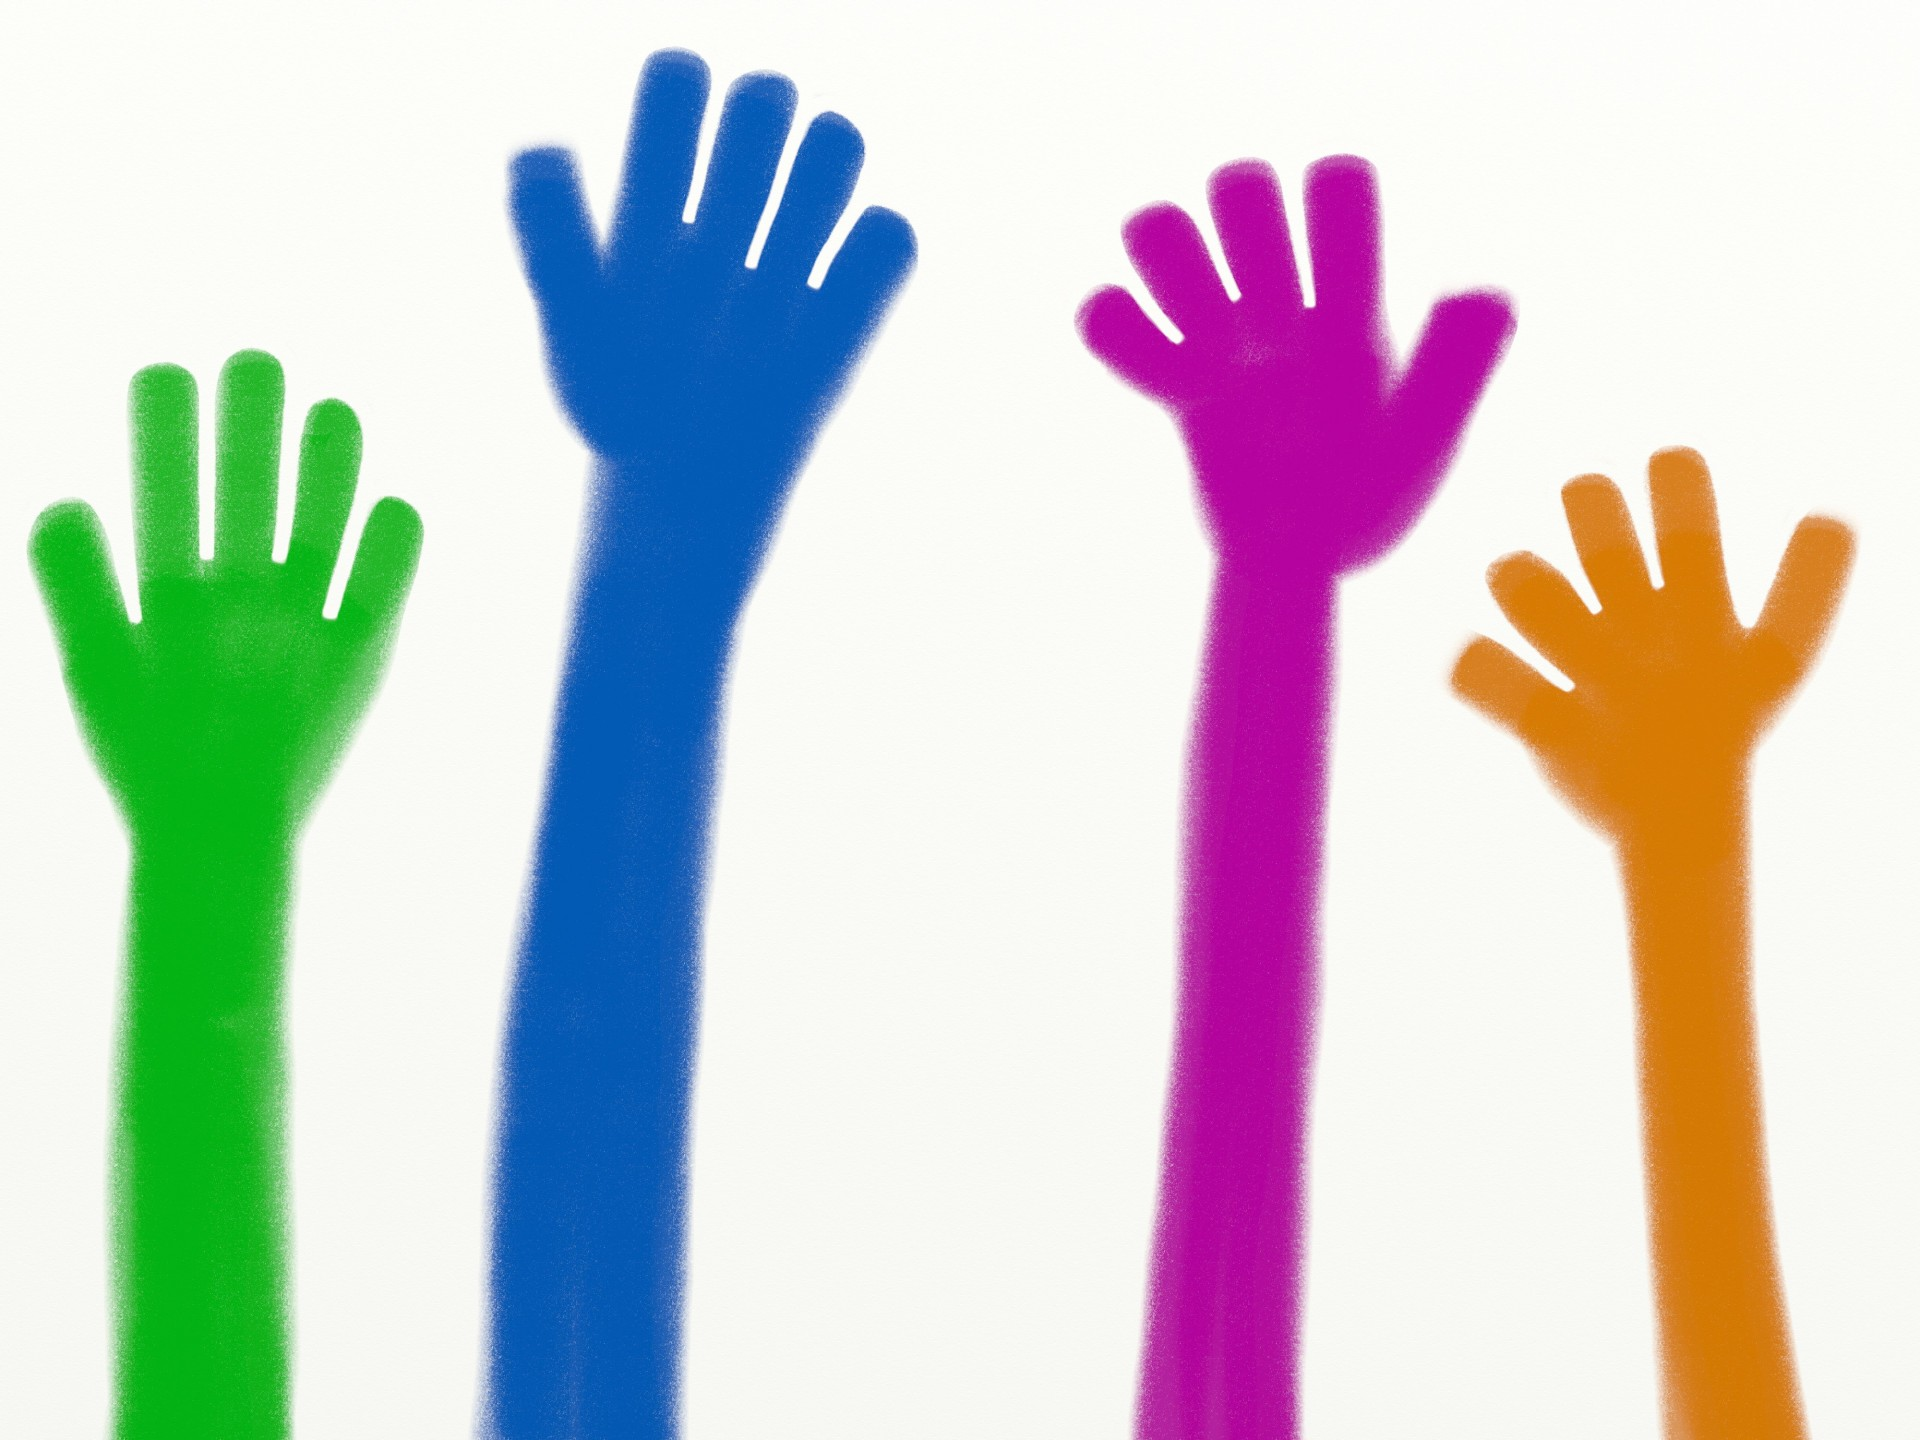 1920x1440 Collection Of Hands Clipart Buy Any Image And Use It For Free